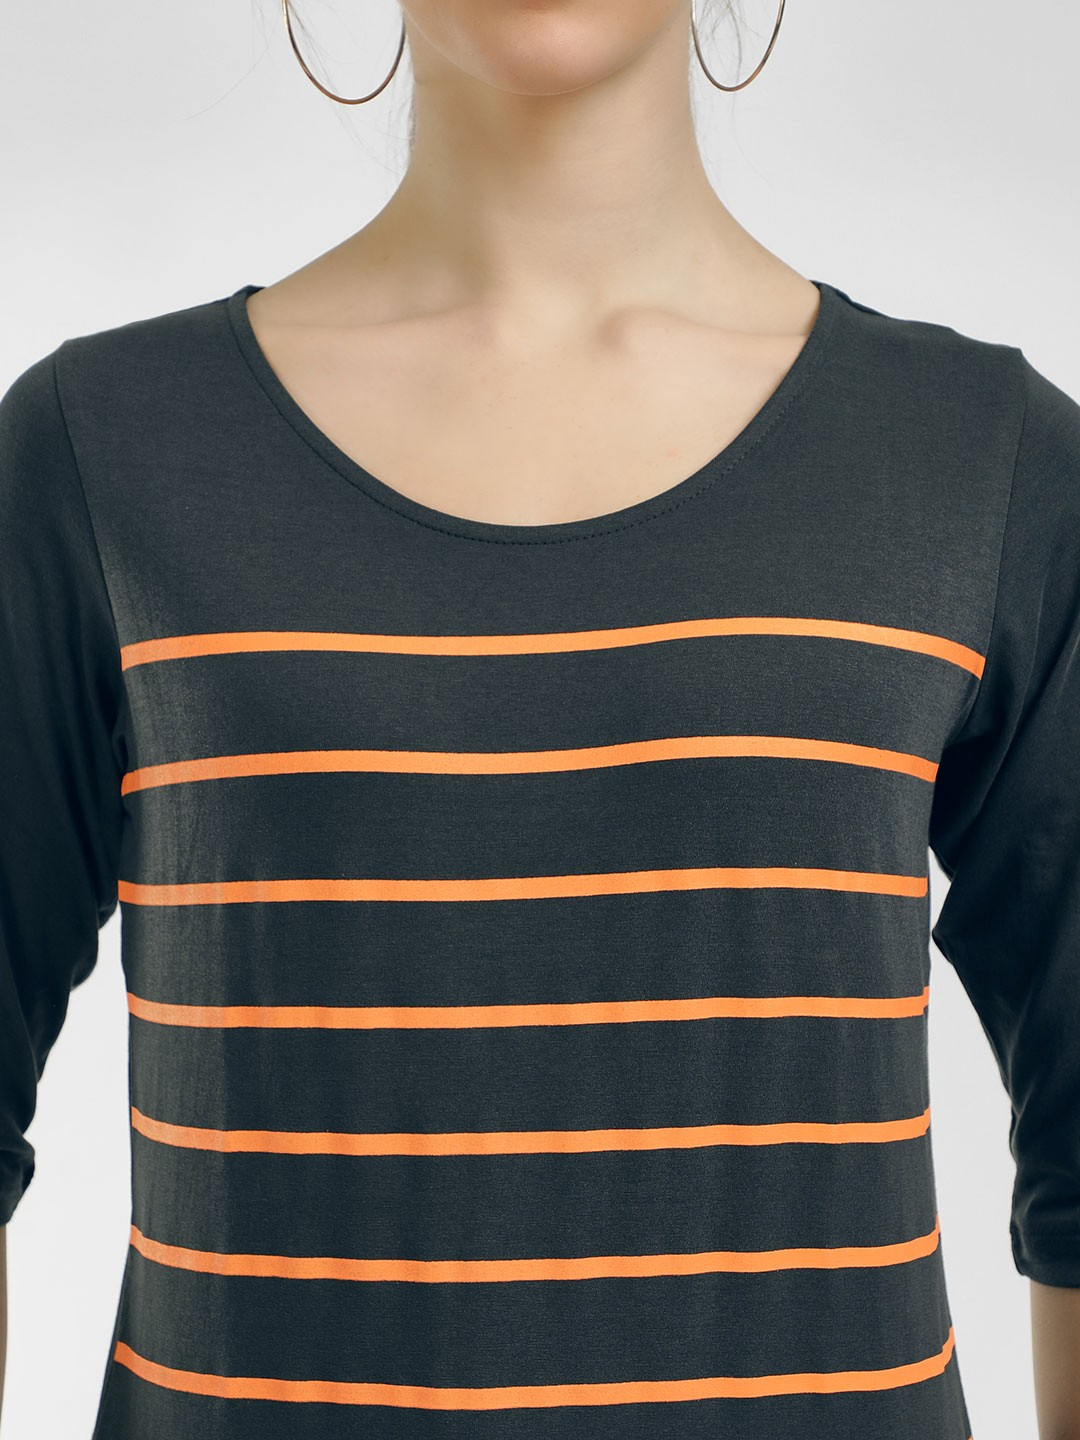 Cult Fiction Grey Striped Long Sleeves T-Shirt 1